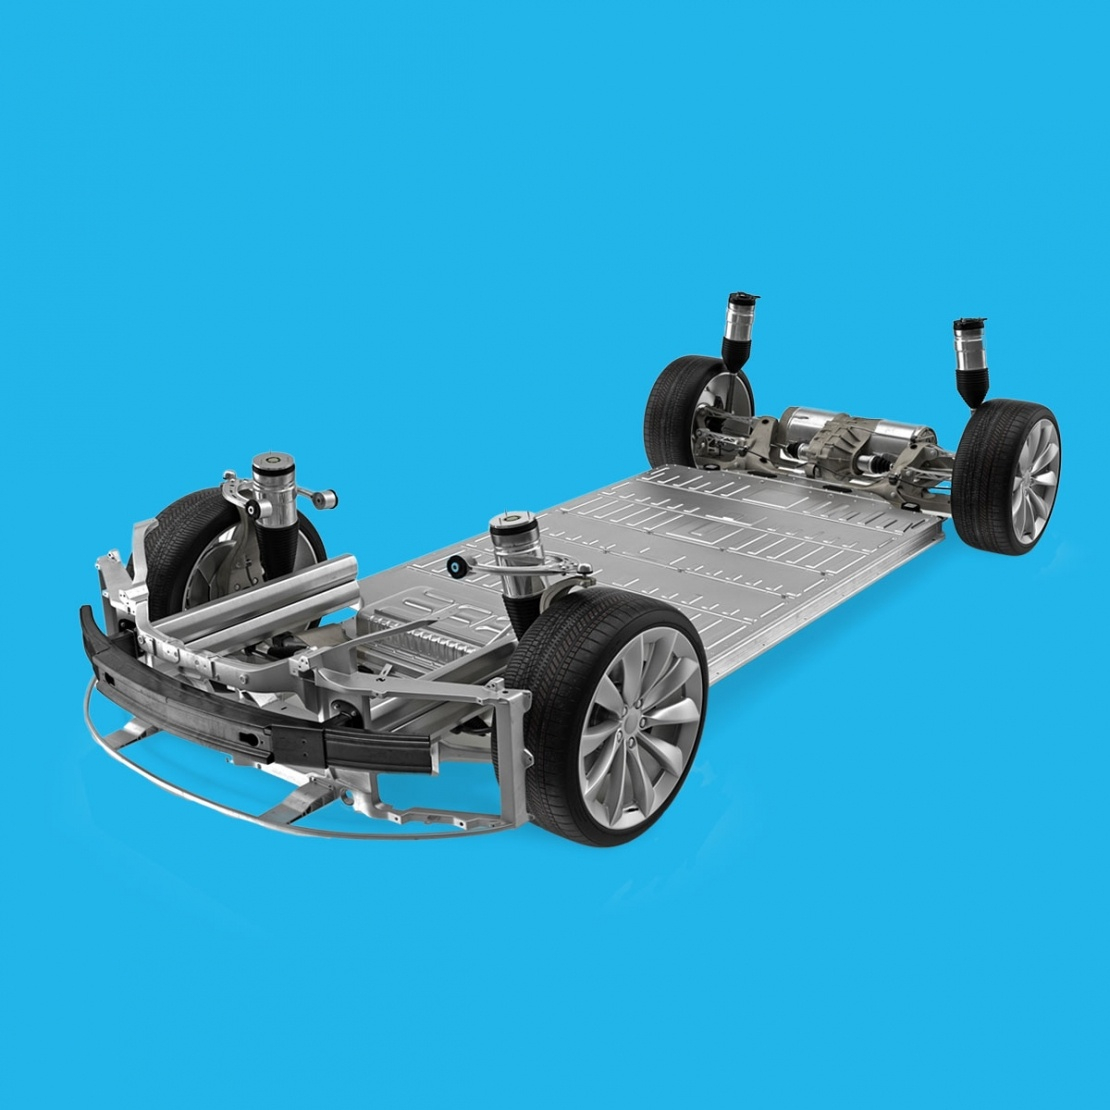 Graphic showing an electric car chassis battery base